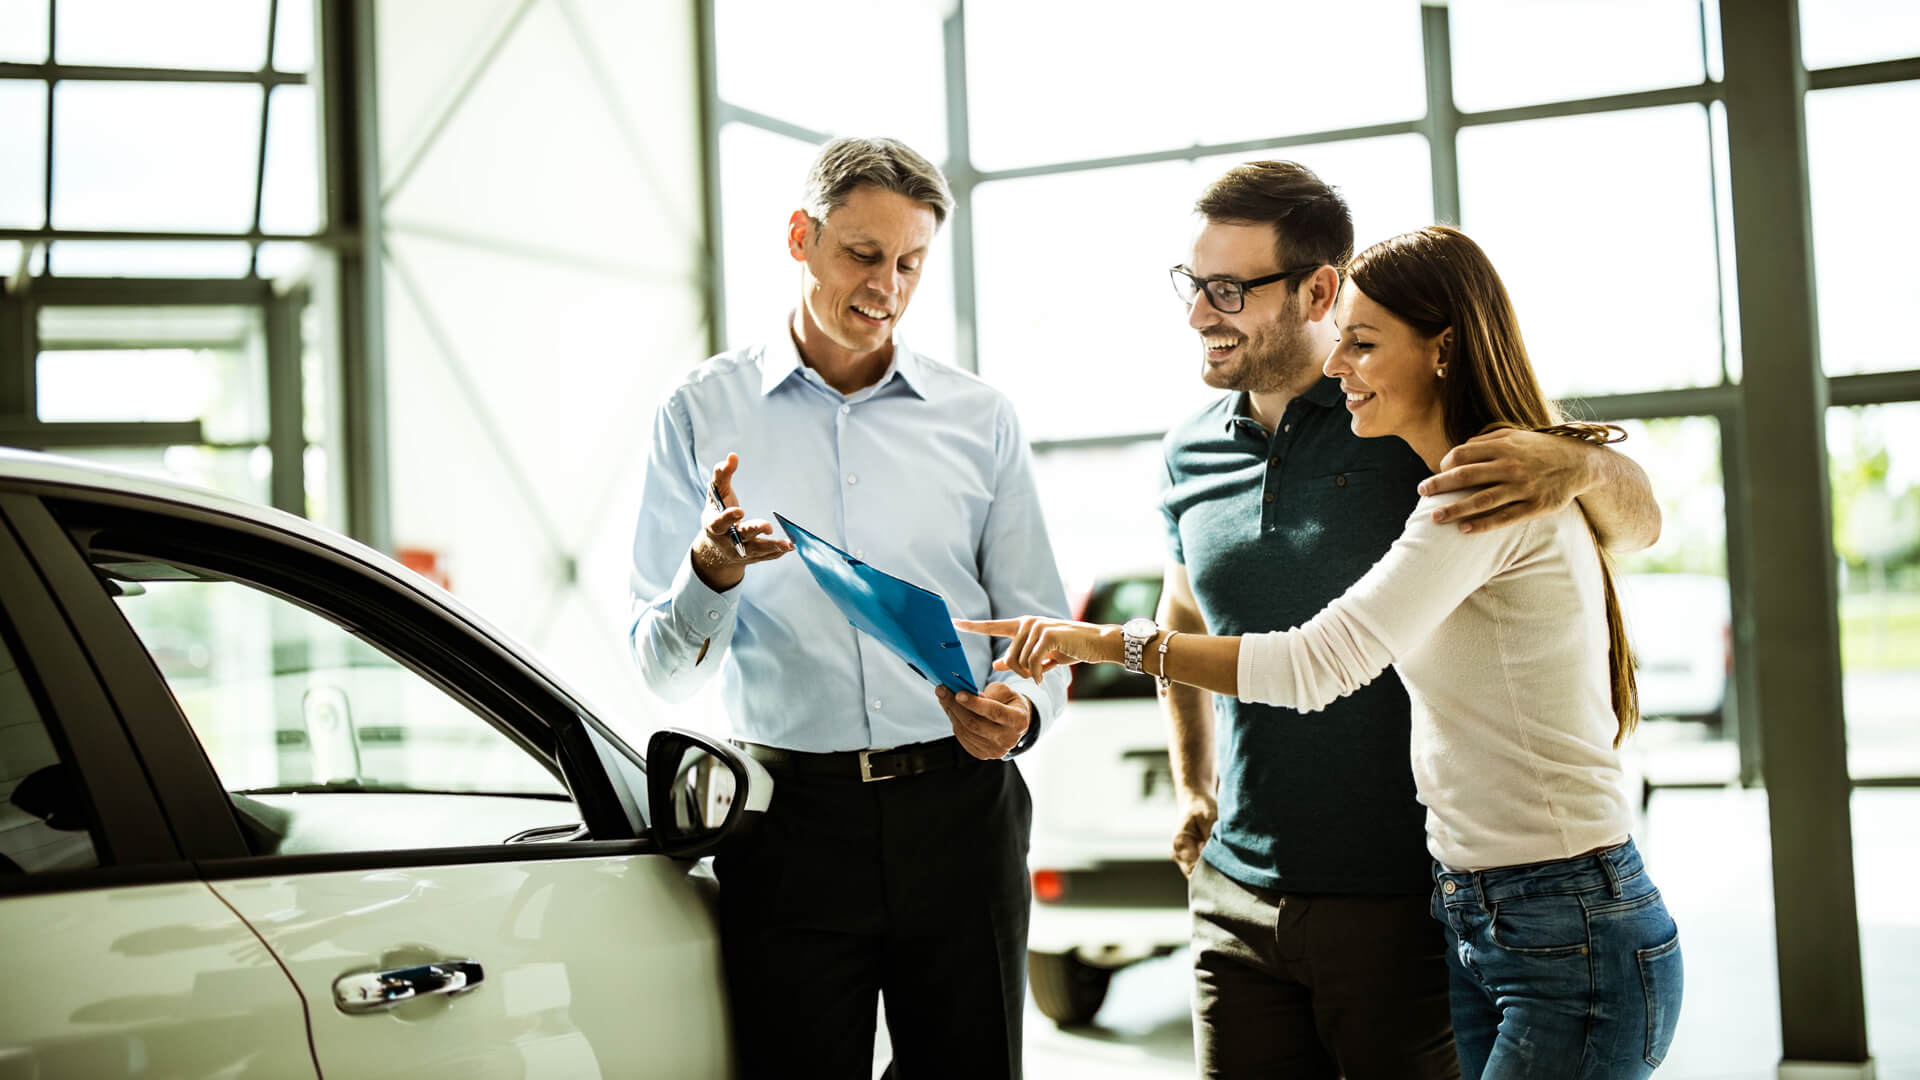 8 Unnecessary Add-ons to Avoid at a Car Dealership